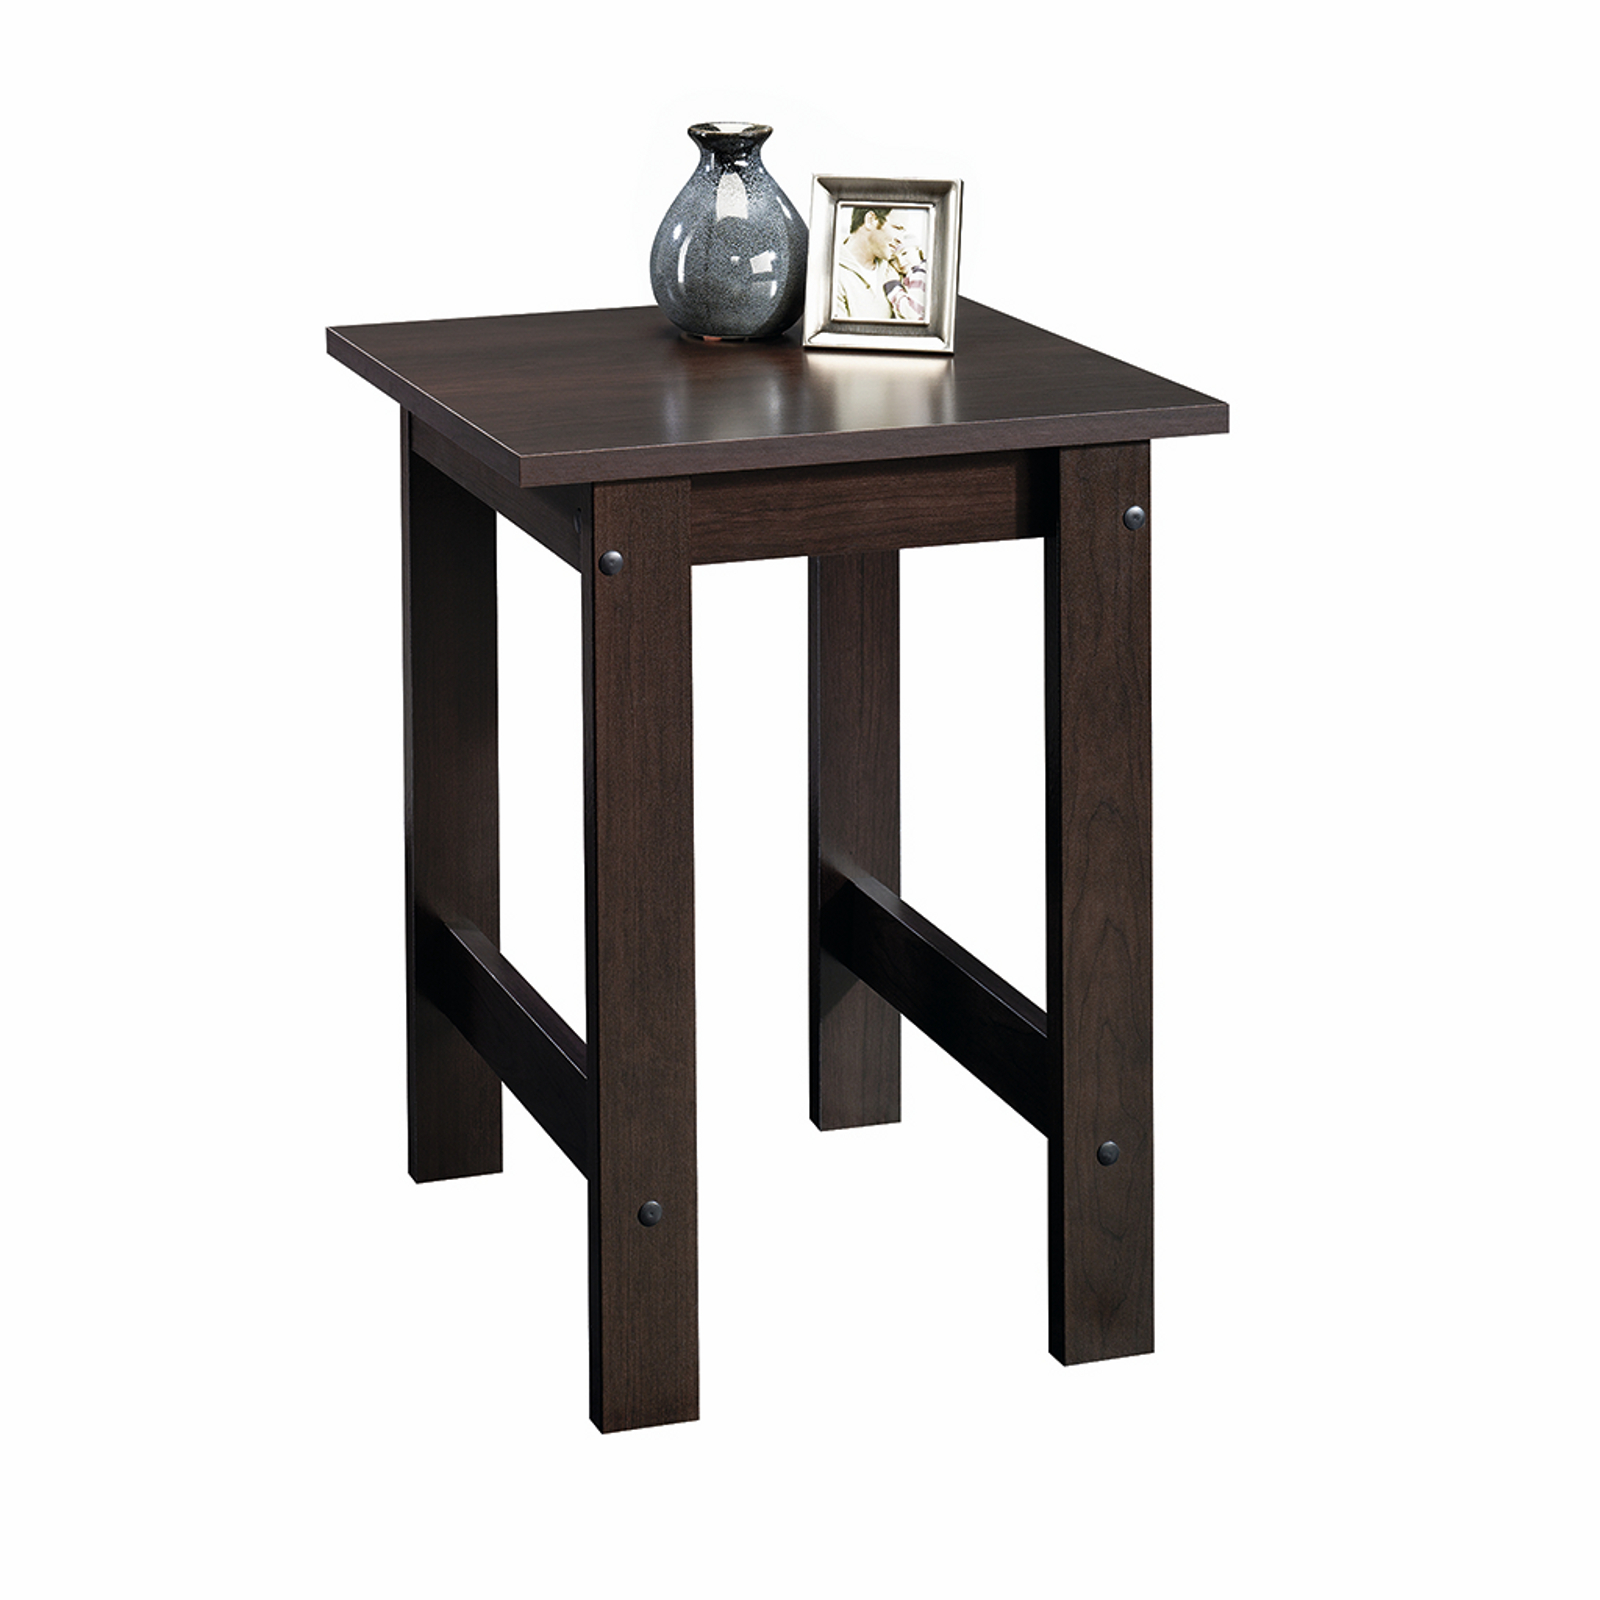 sauder beginnings side table cinnamon cherry spin prod kmart furniture end tables what color rug goes with dark brown raw wood kitchen glass when does the calendar start chocolate